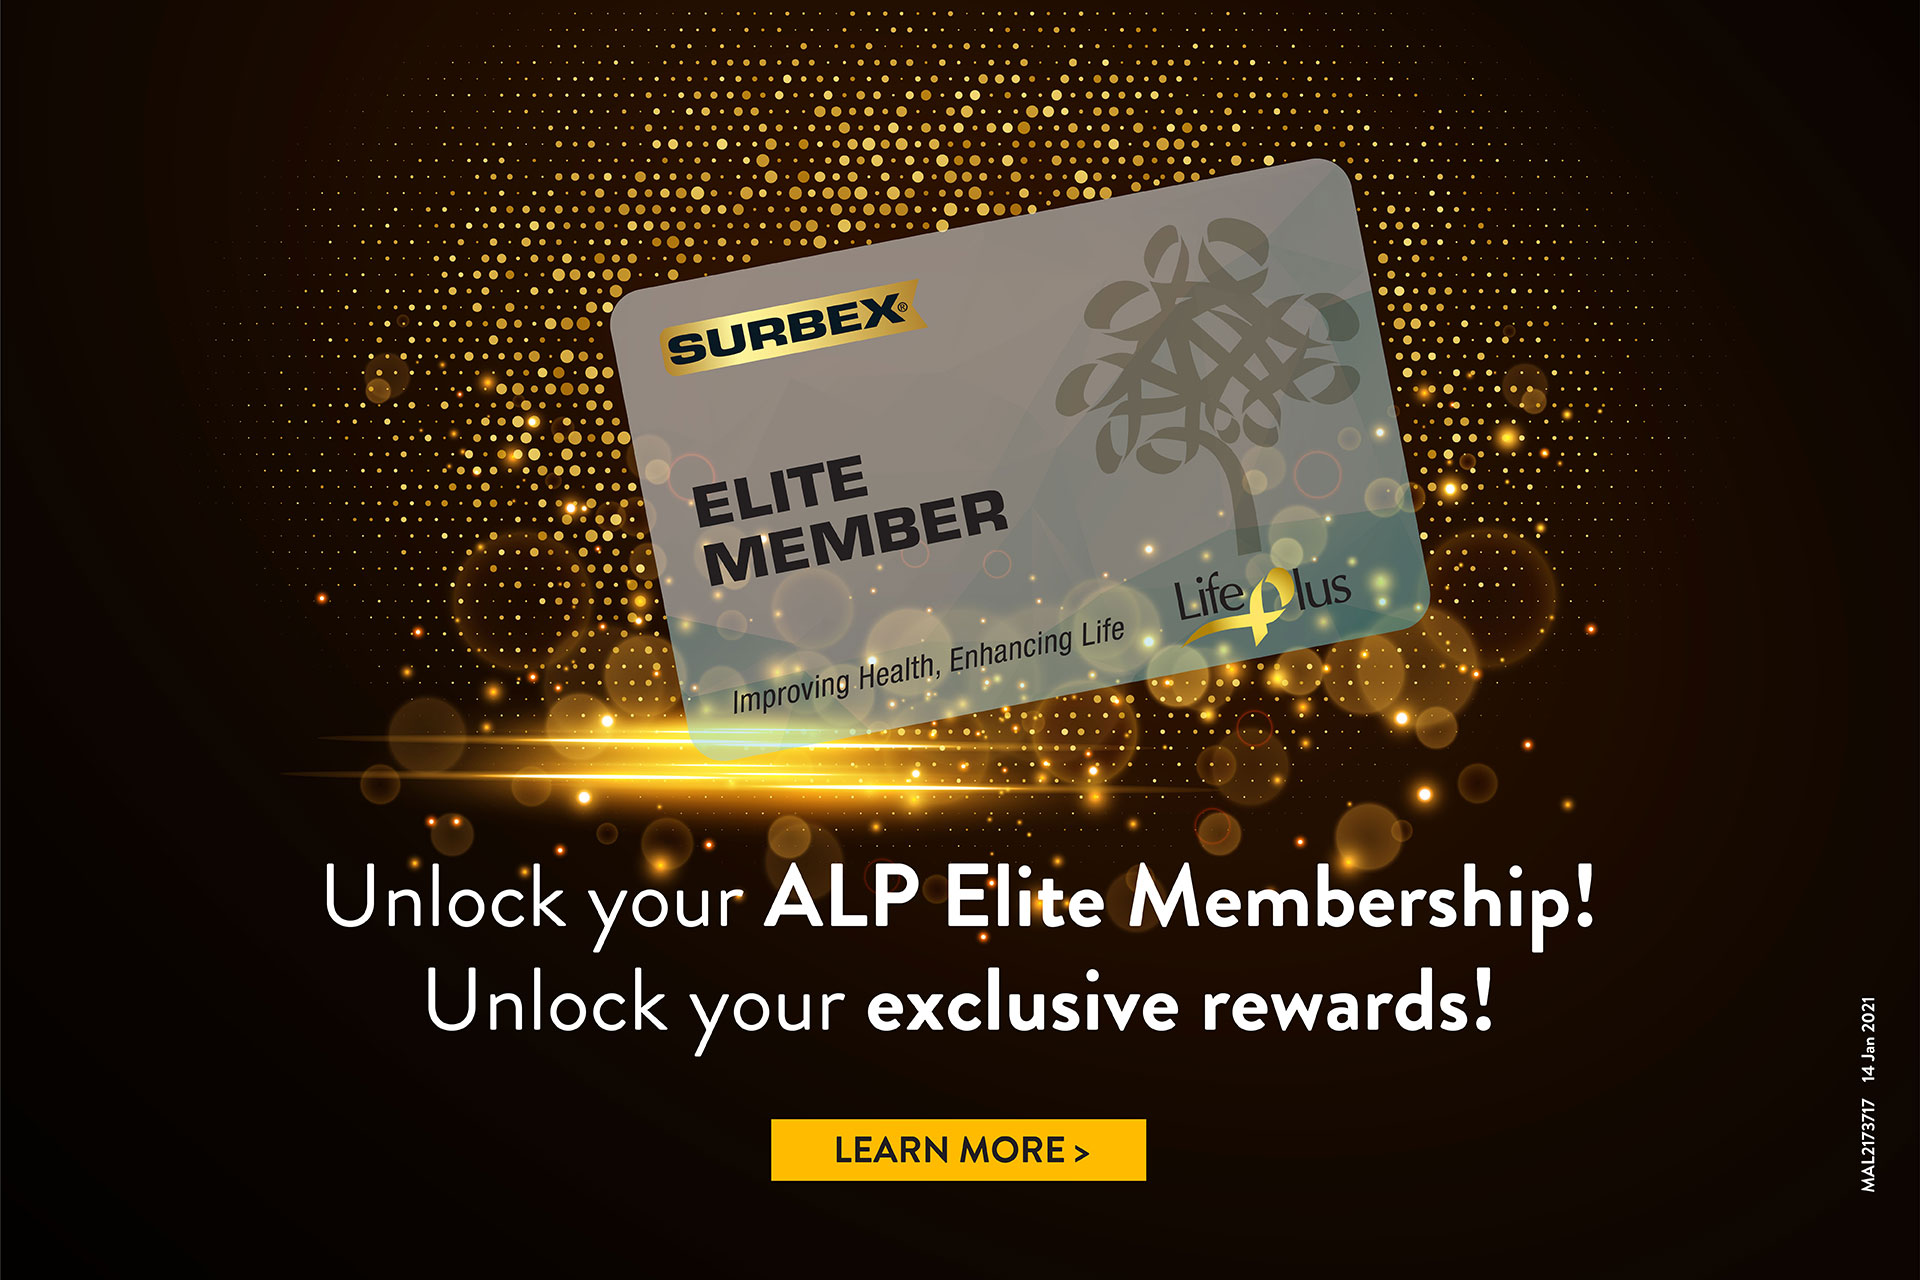 ALP Elite Membership